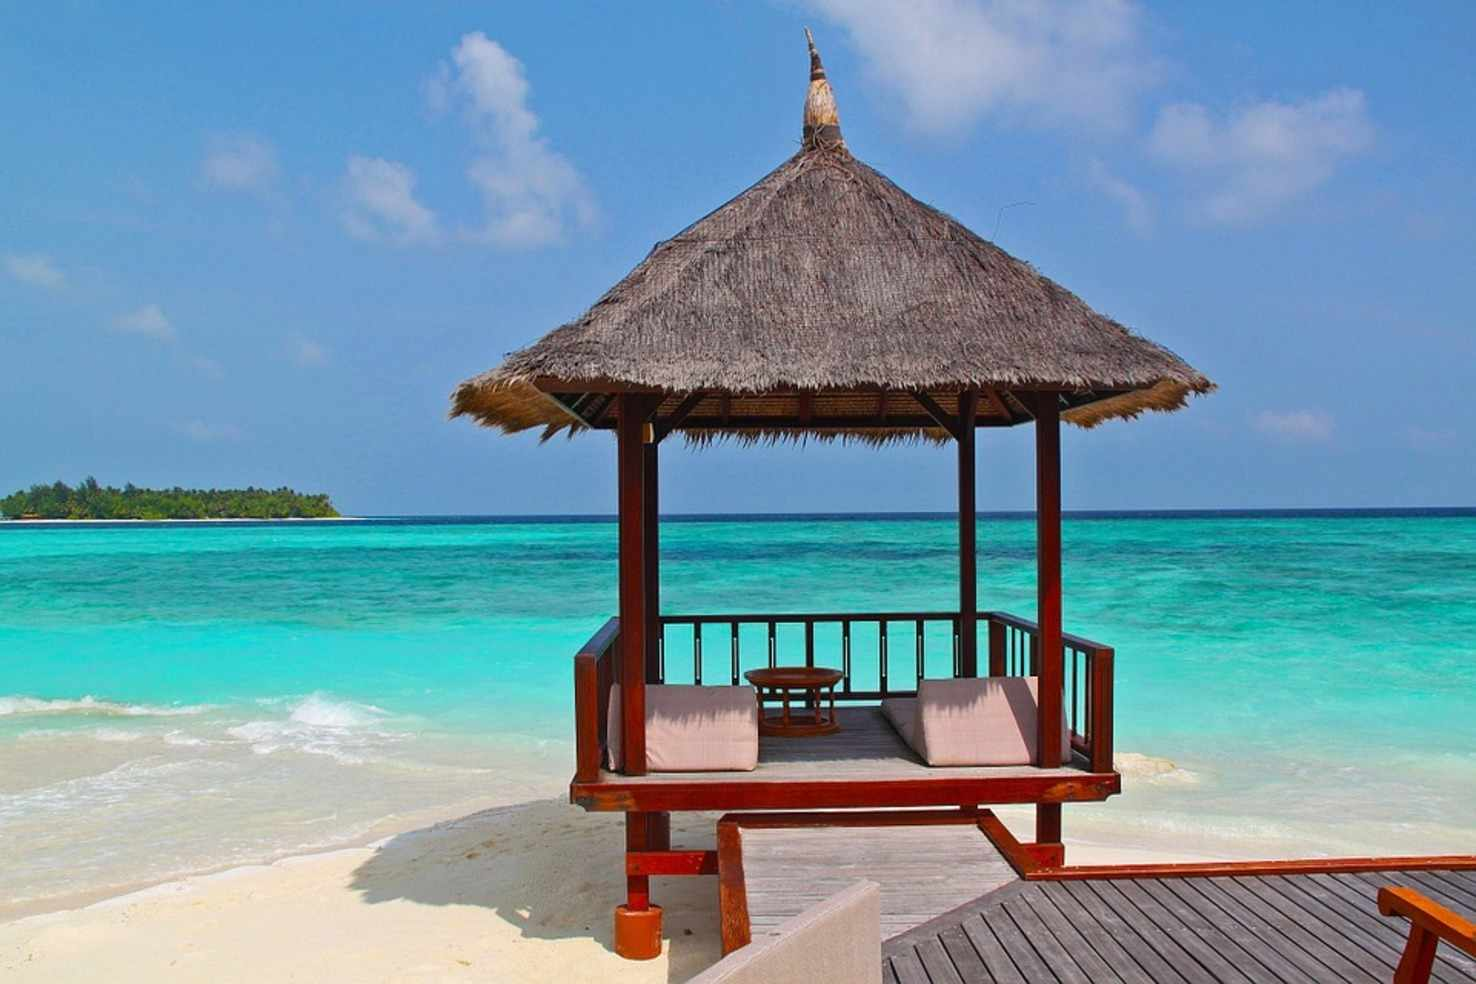 Maldives Tour Package (4 Nights/5 Days)